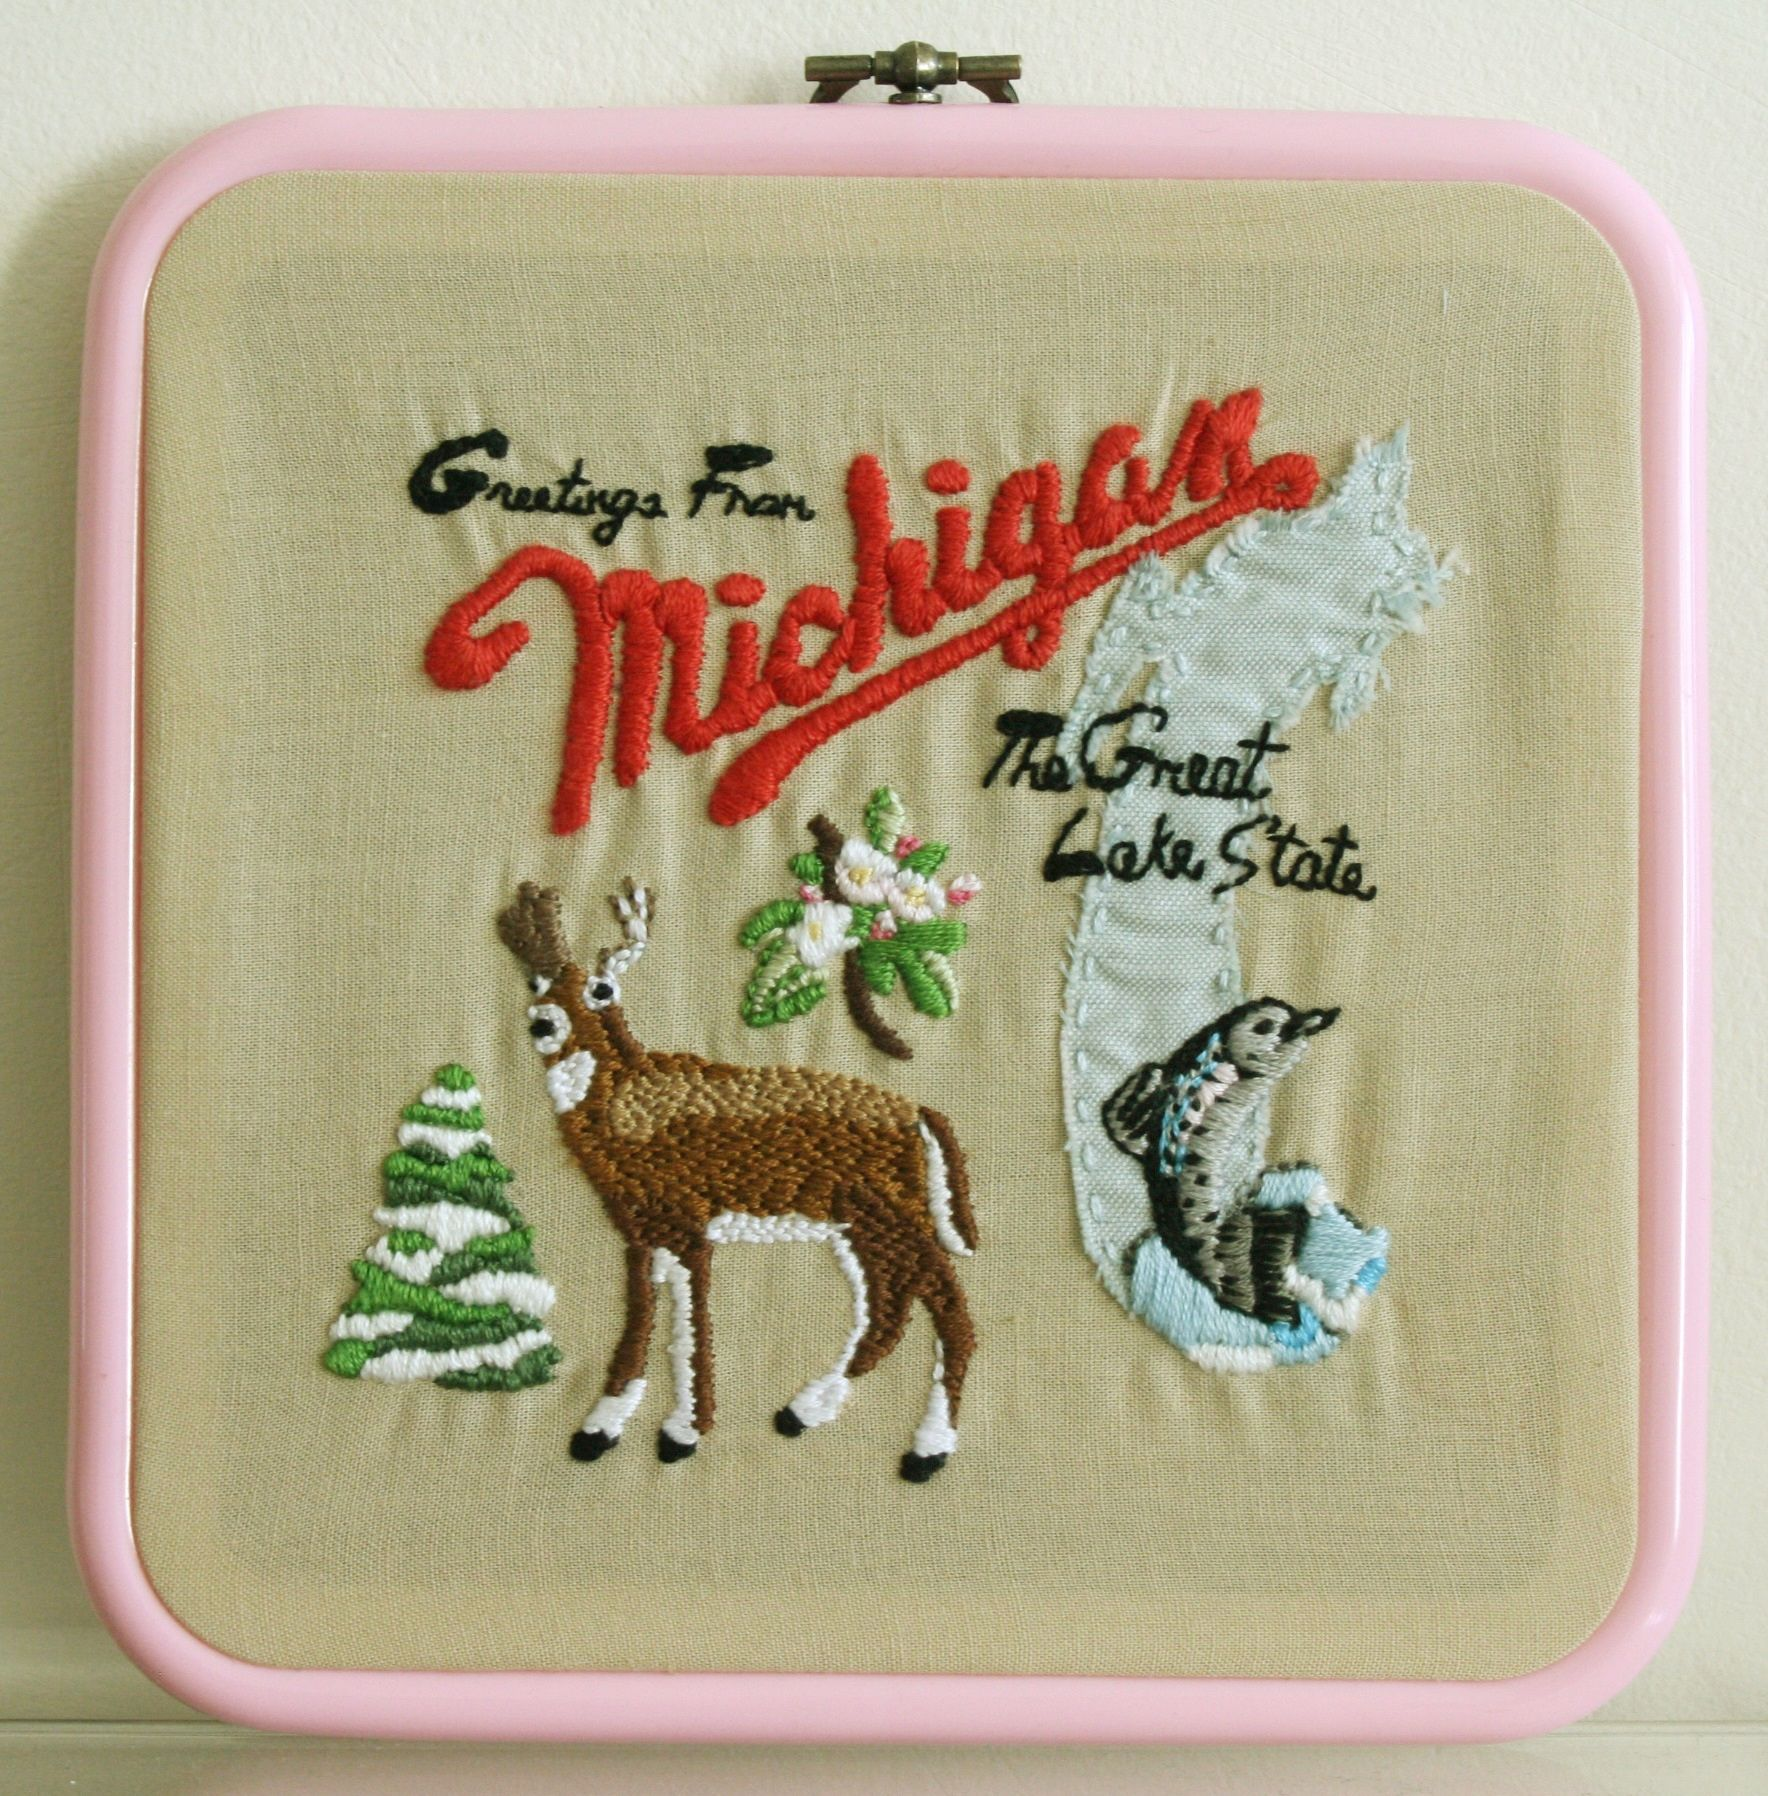 Hand embroidered sufjan stevens greetings from michigan album cover hand embroidered sufjan stevens greetings from michigan album cover embroidery hoop crafts m4hsunfo